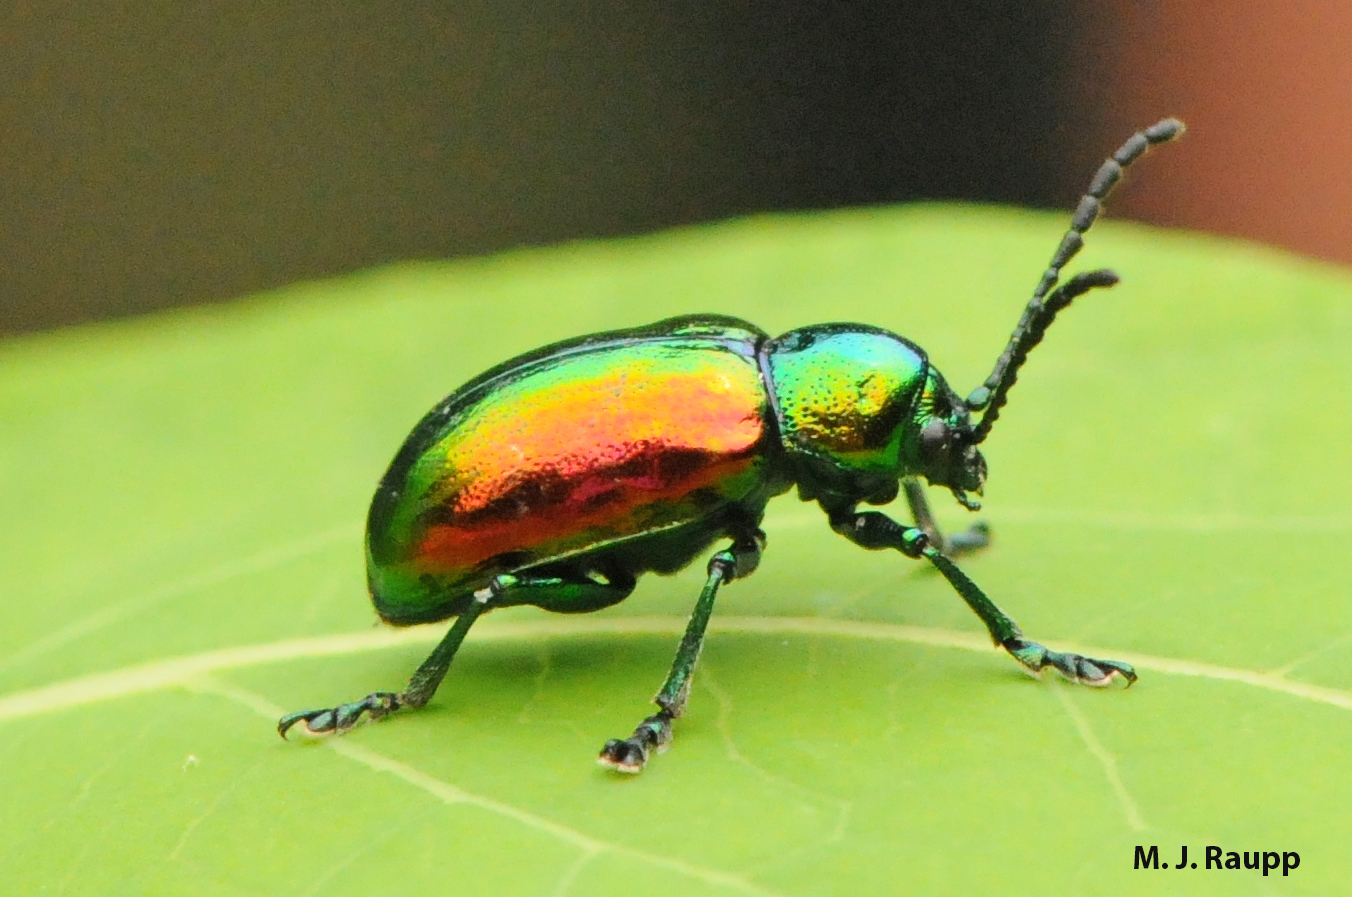 True to its Latin root aurat, meaning gold, the dogbane leaf beetle has hews of gold and its alloys of green, blue, yellow, and red.